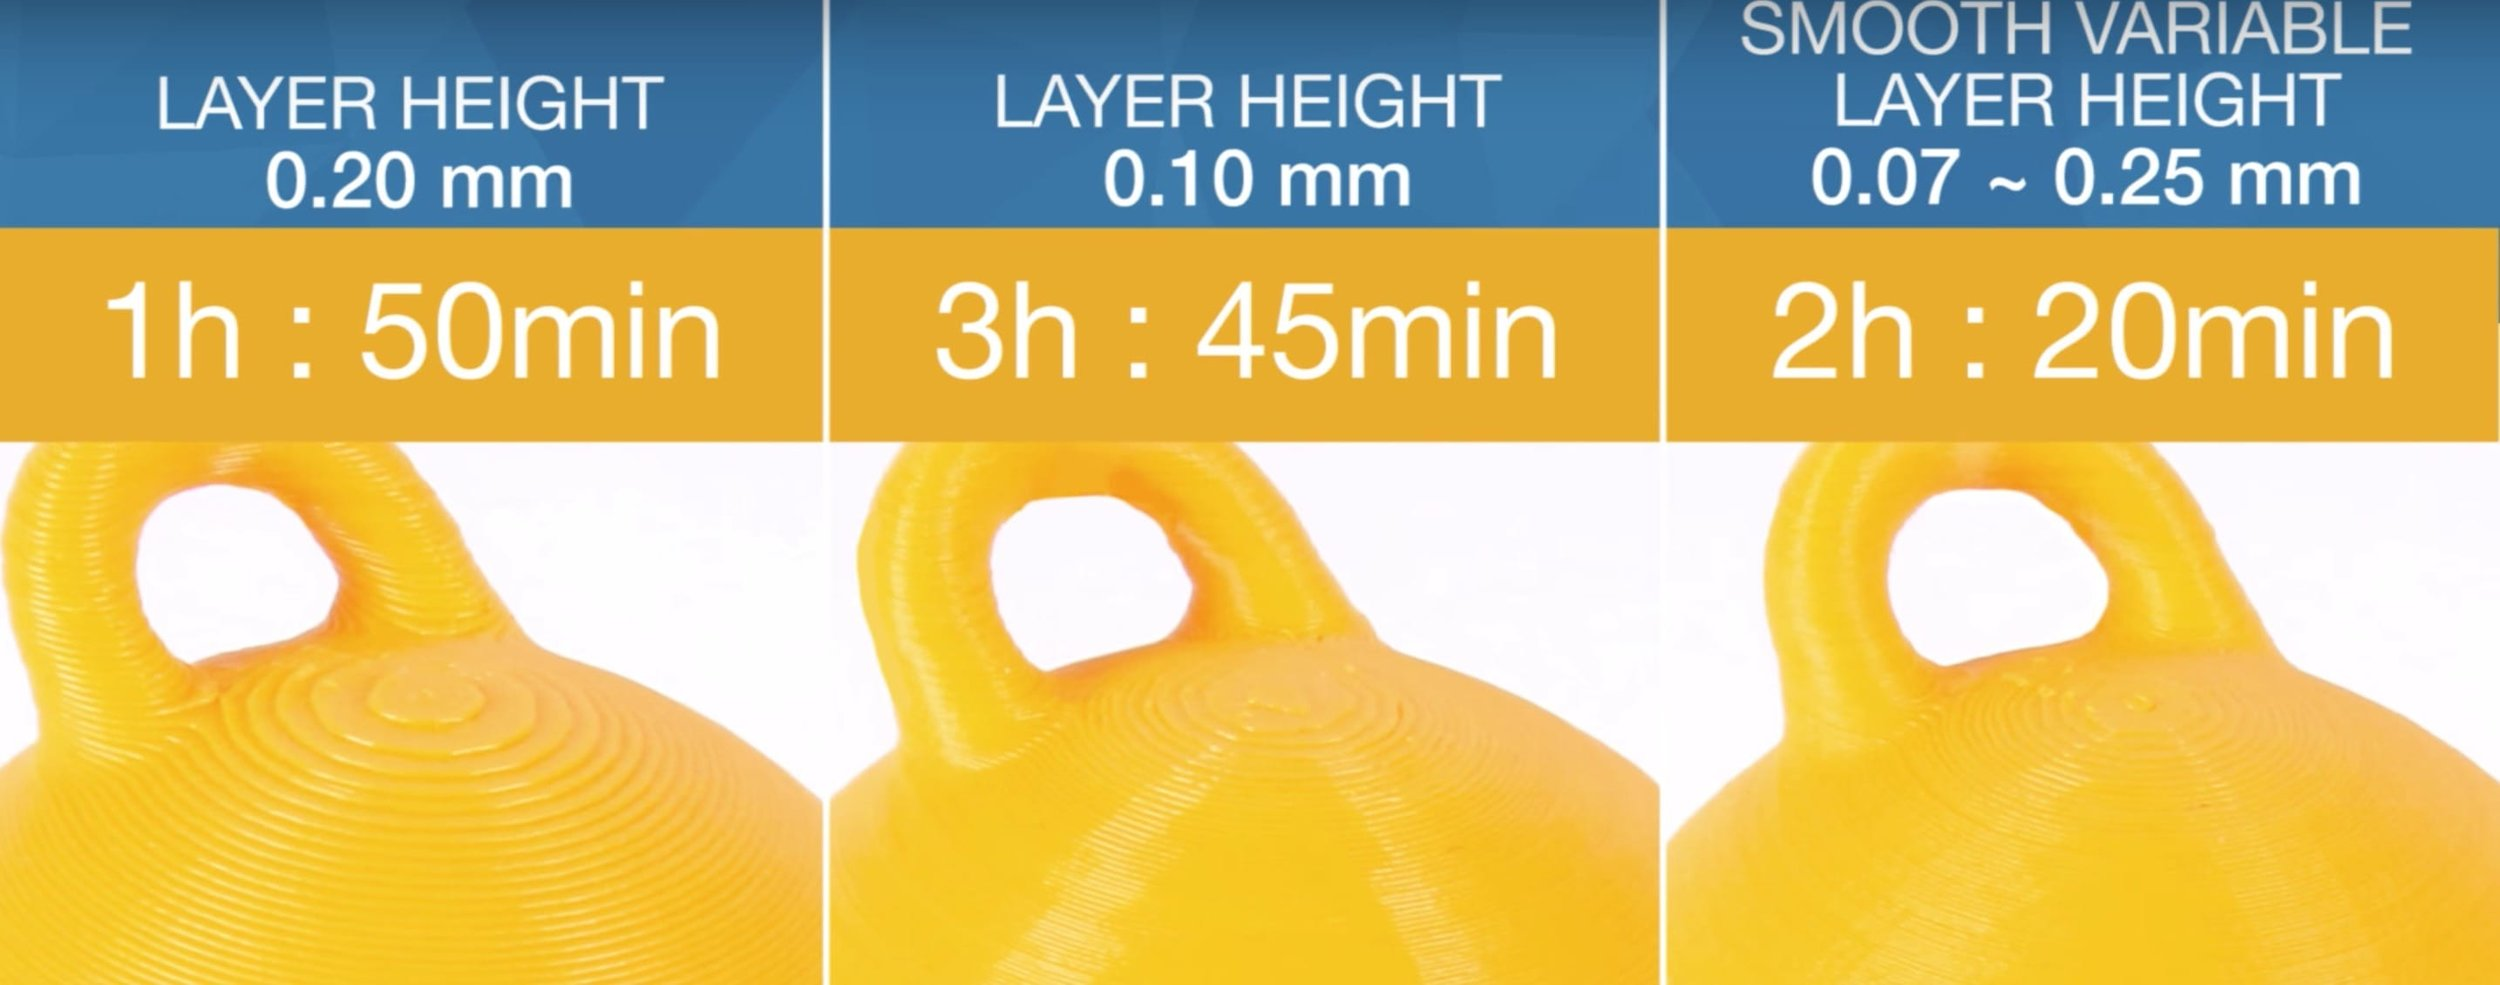 ", Prusa Introduces ""Smooth Variable Layer Height"" to Combine Speed AND Quality"